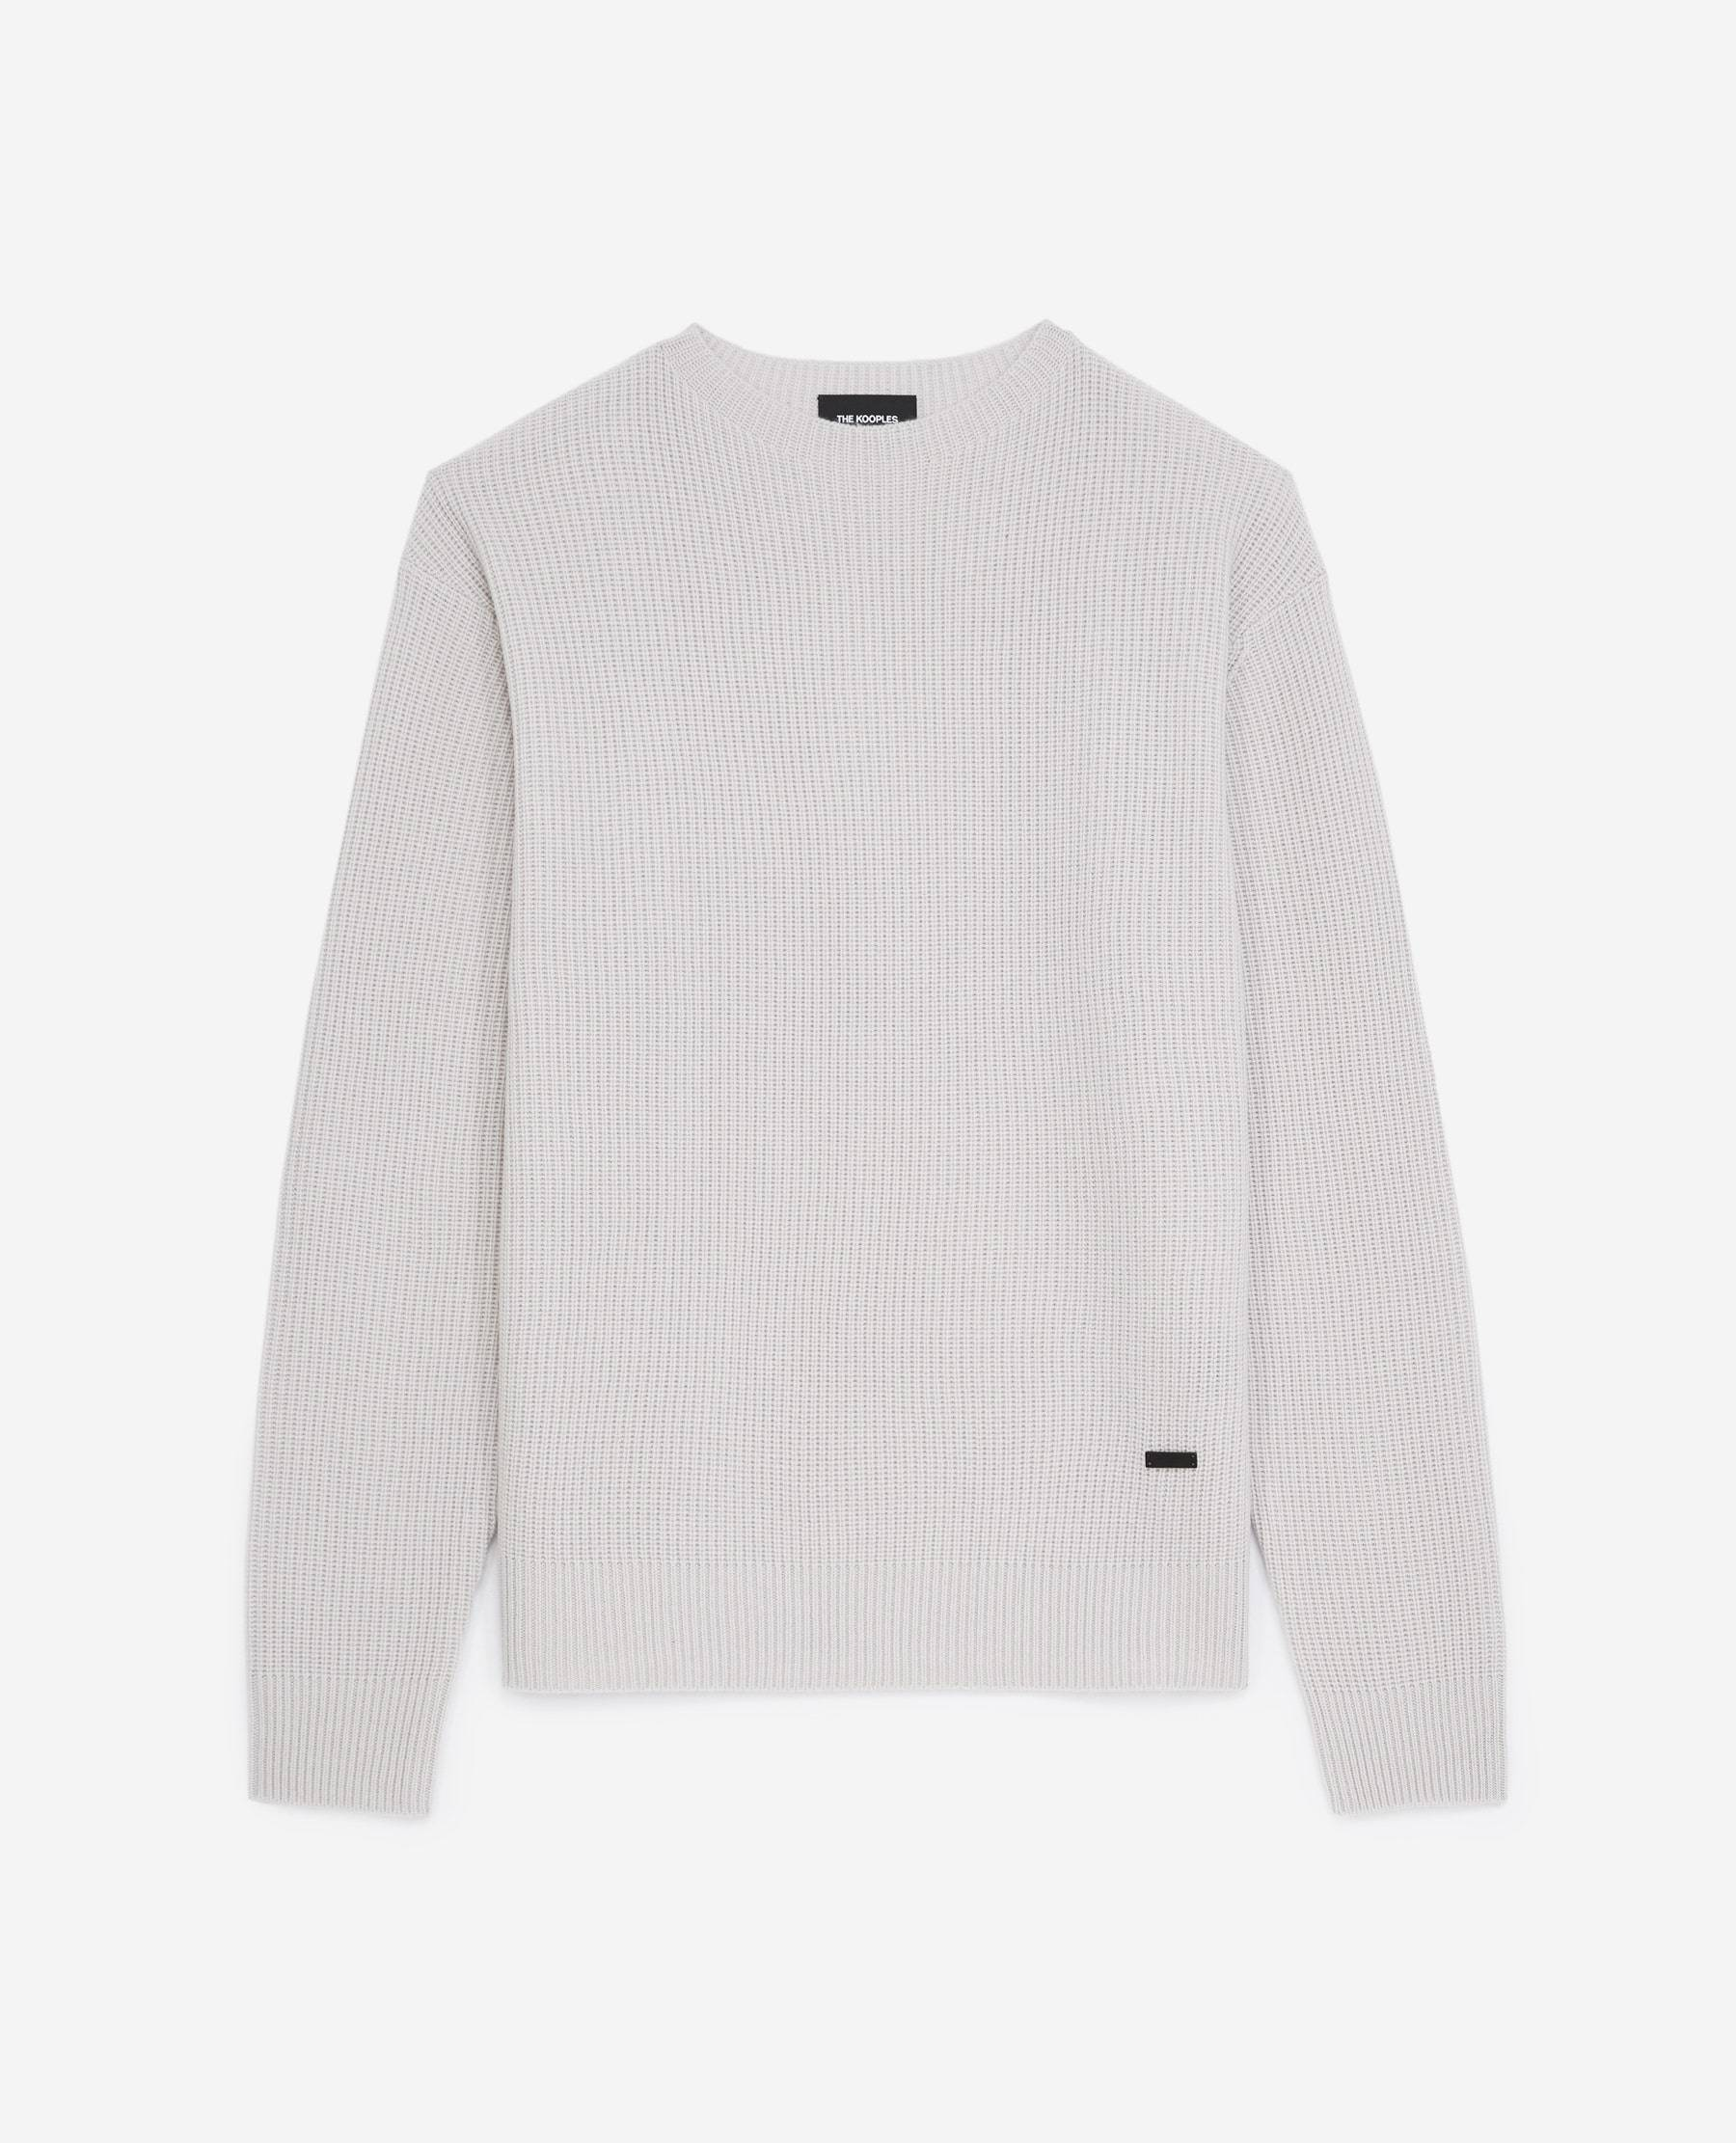 The Kooples - Pull maille écru à col montant - HOMME M